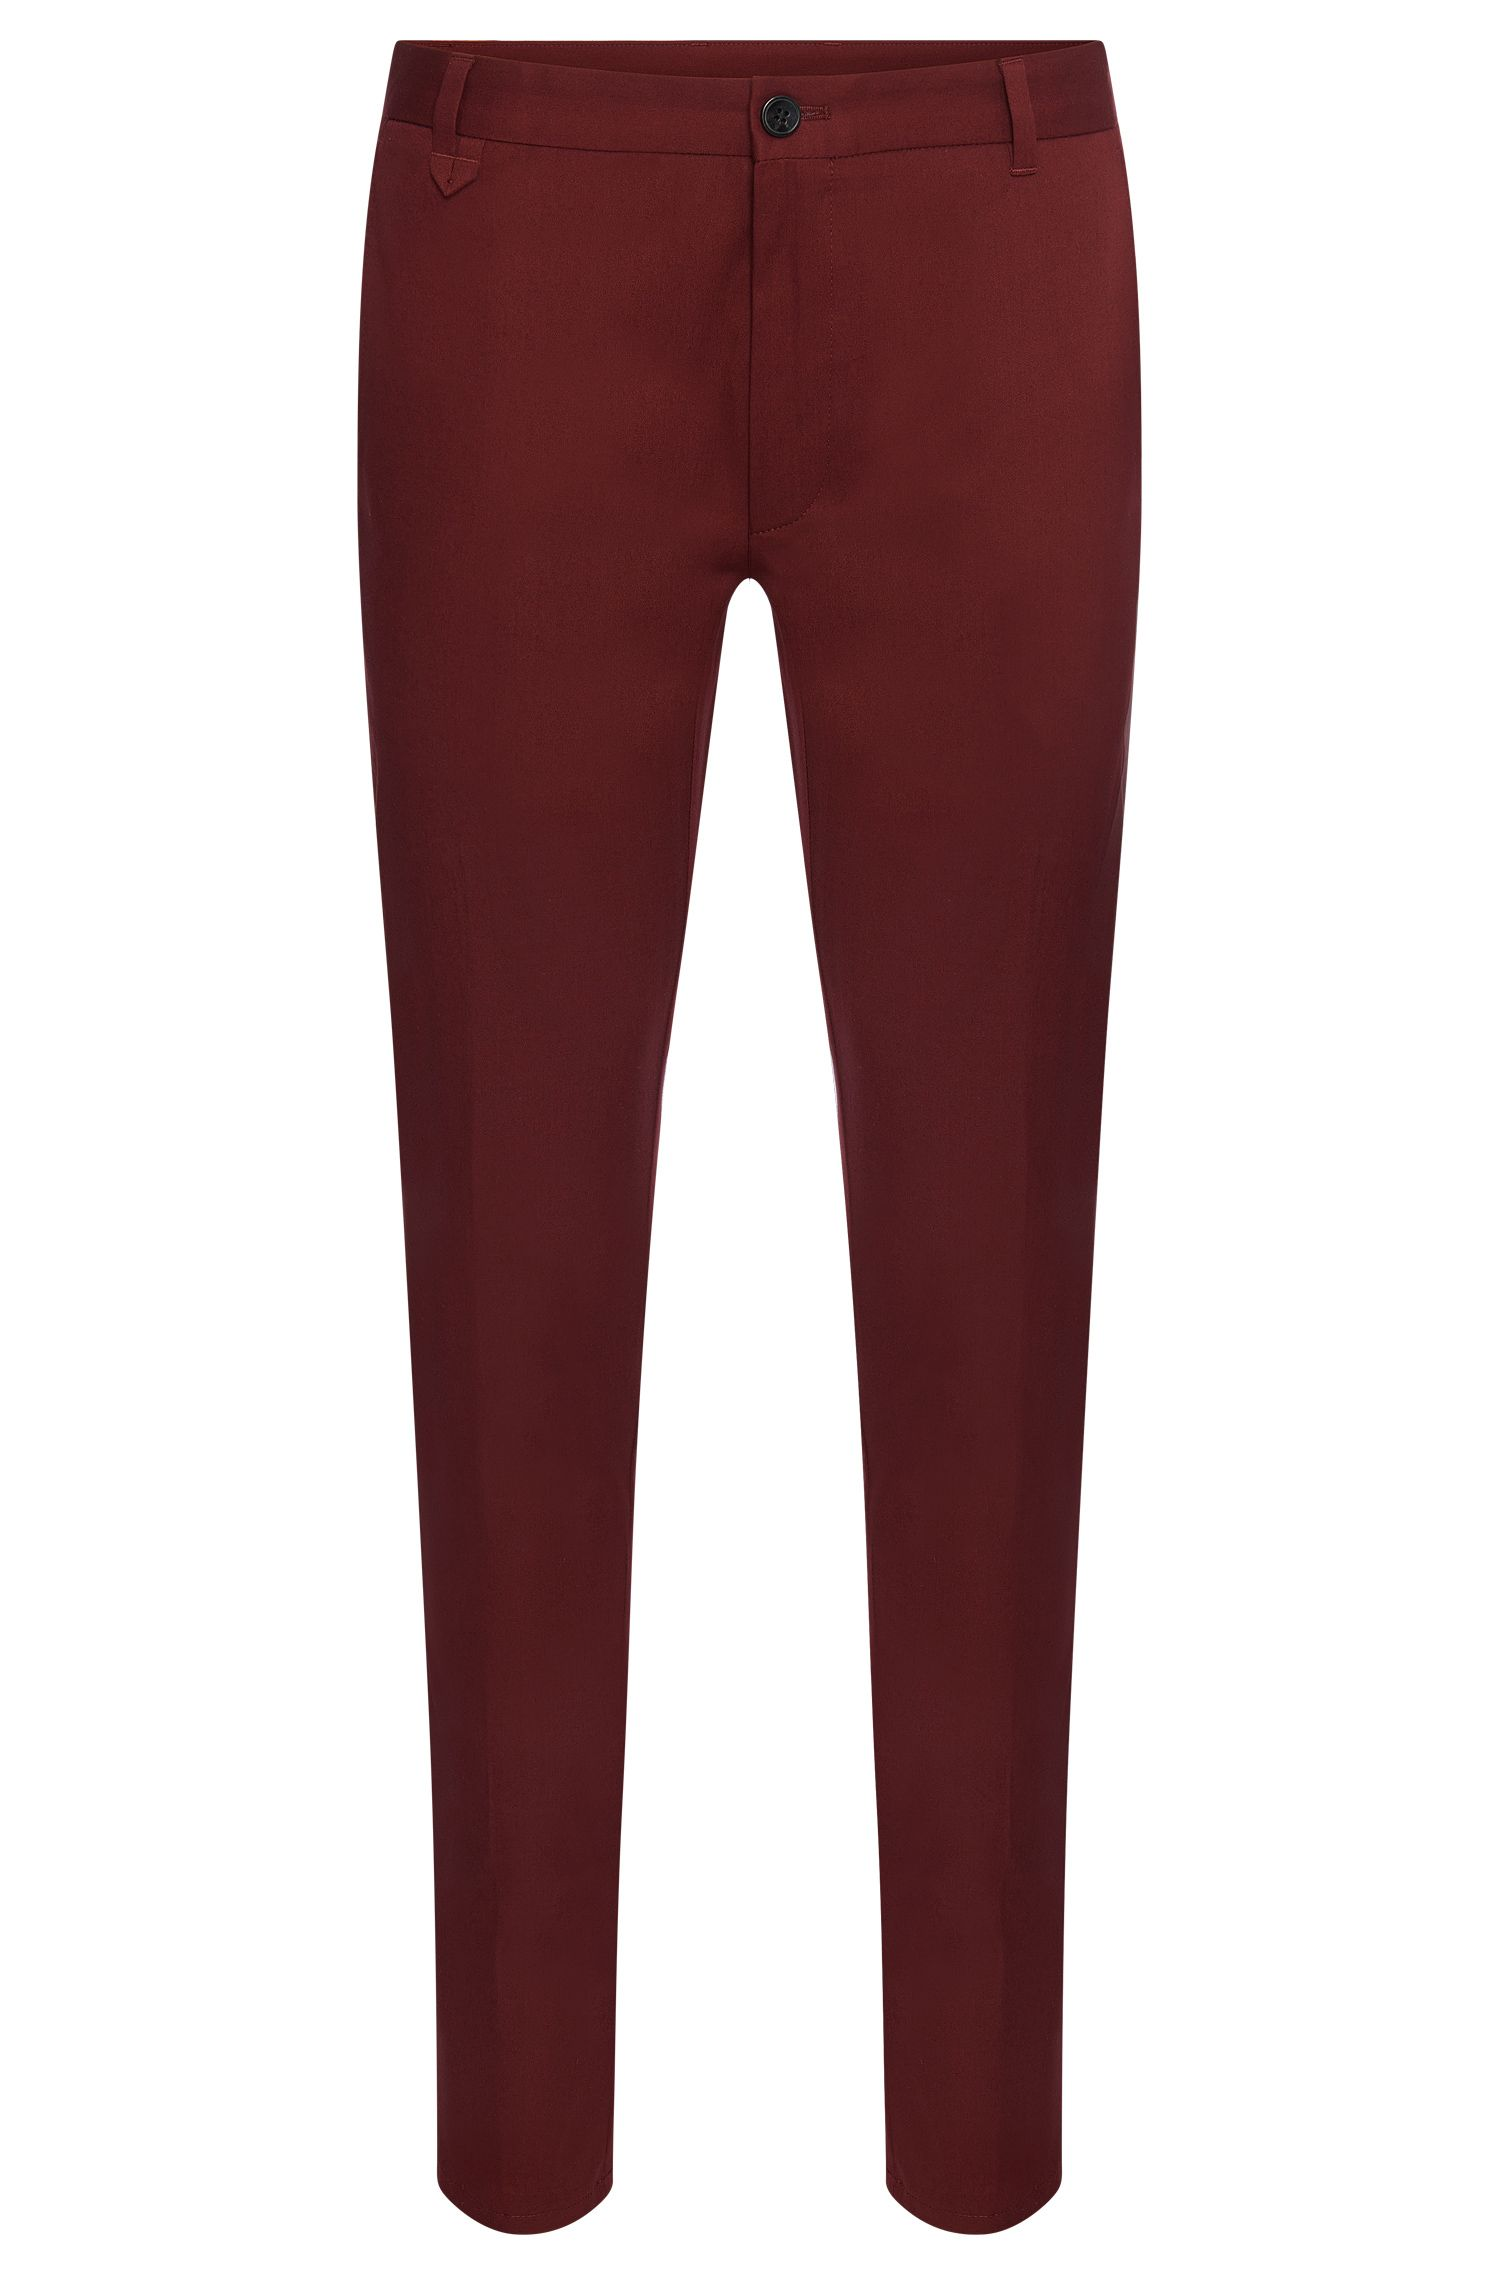 'Heldor' | Extra Slim Fit, Stretch Cotton Pants